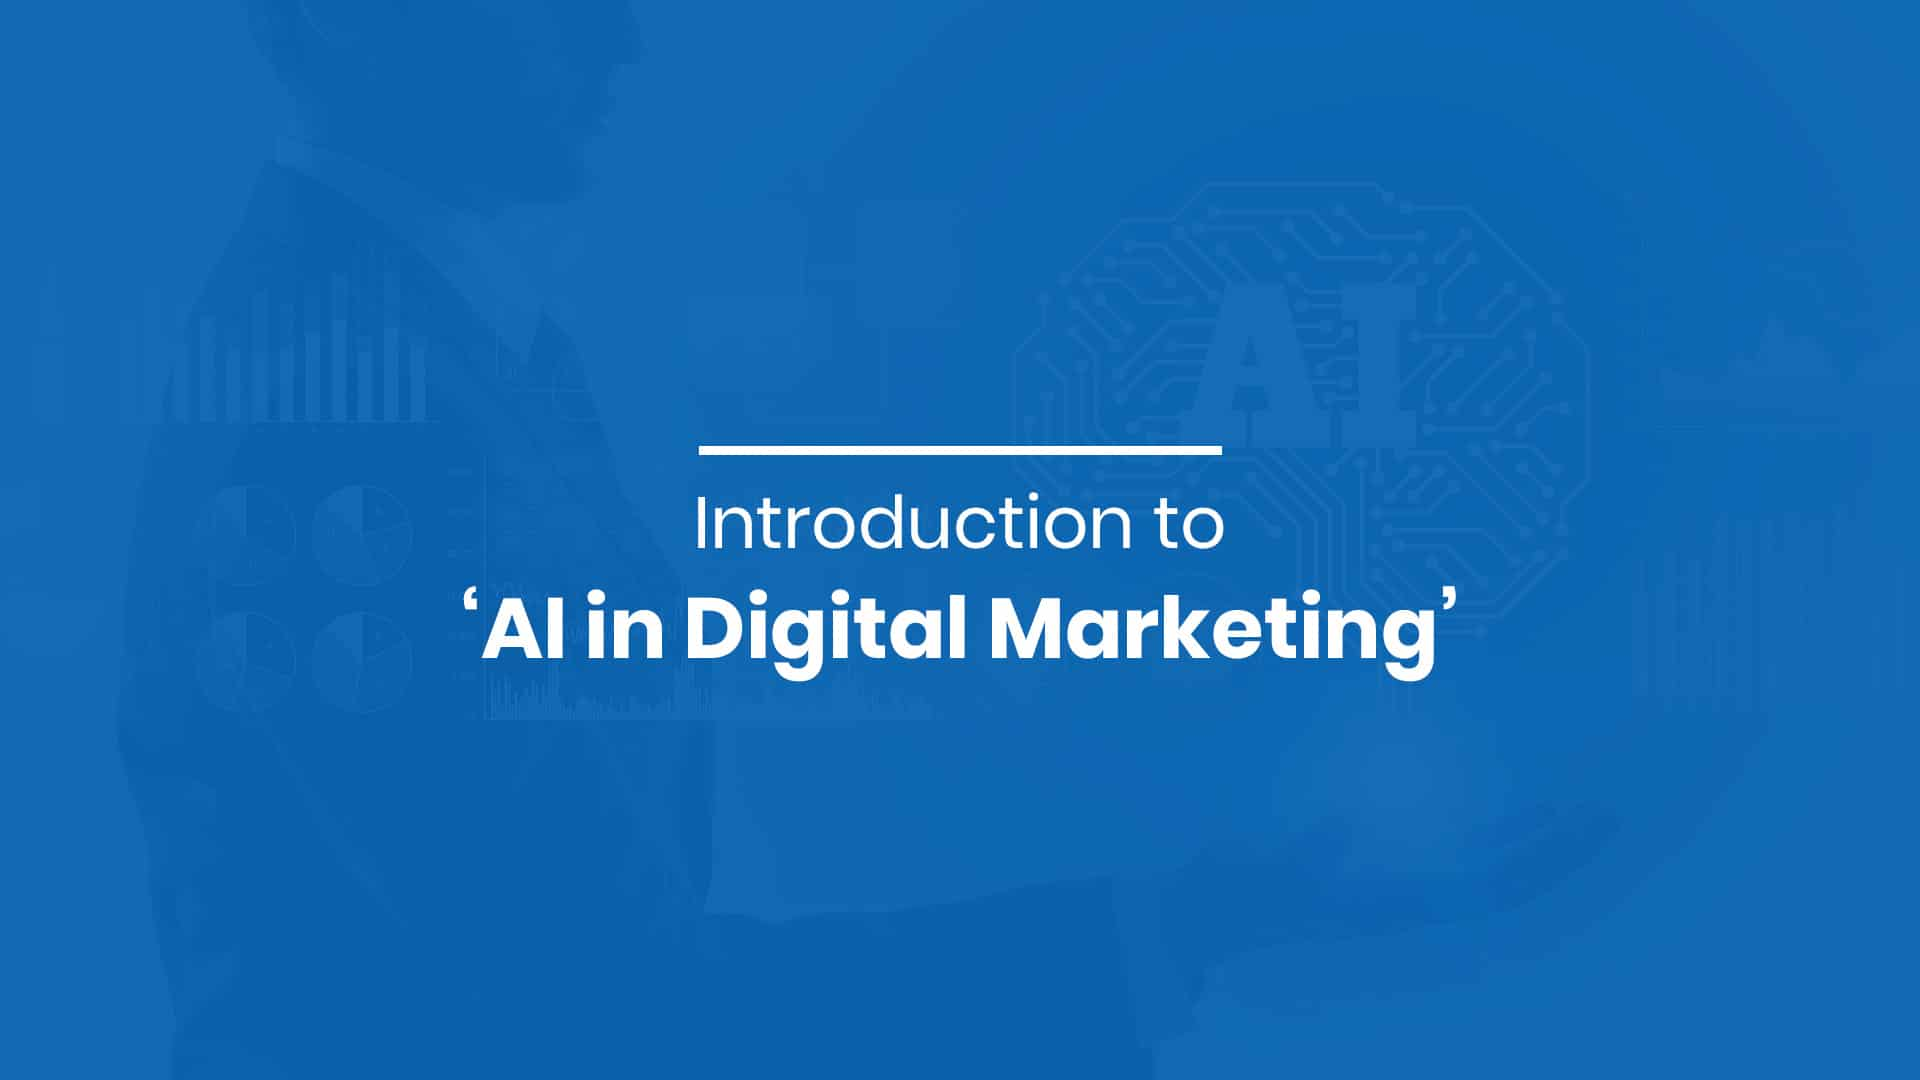 Introduction to 'AI in Digital Marketing'